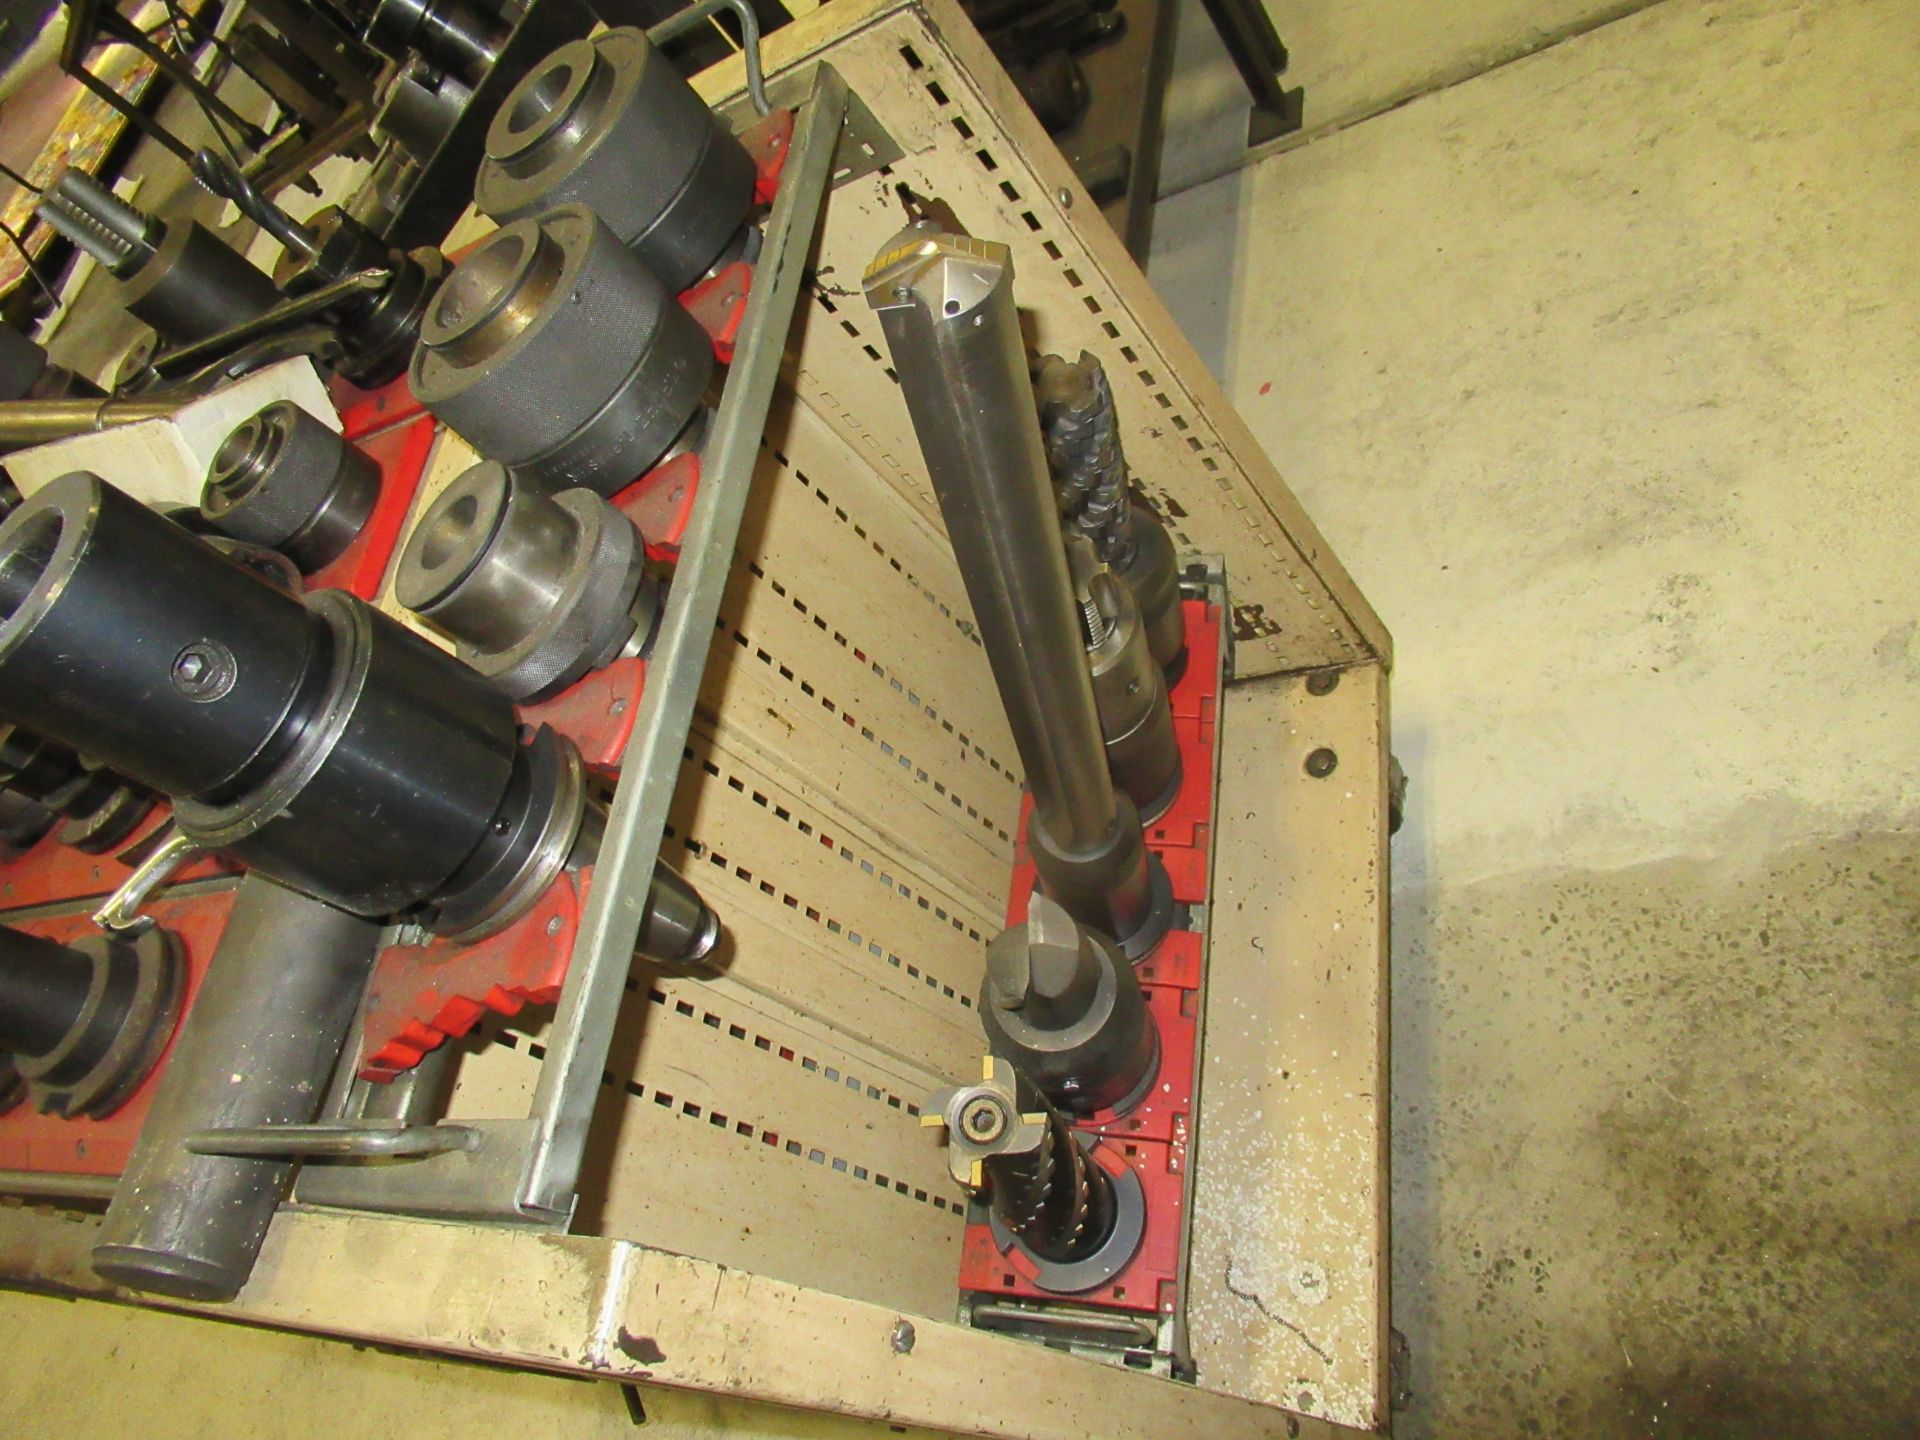 LOT OF #50 TAPER TOOL HOLDERS WITH CARTS - Image 3 of 3